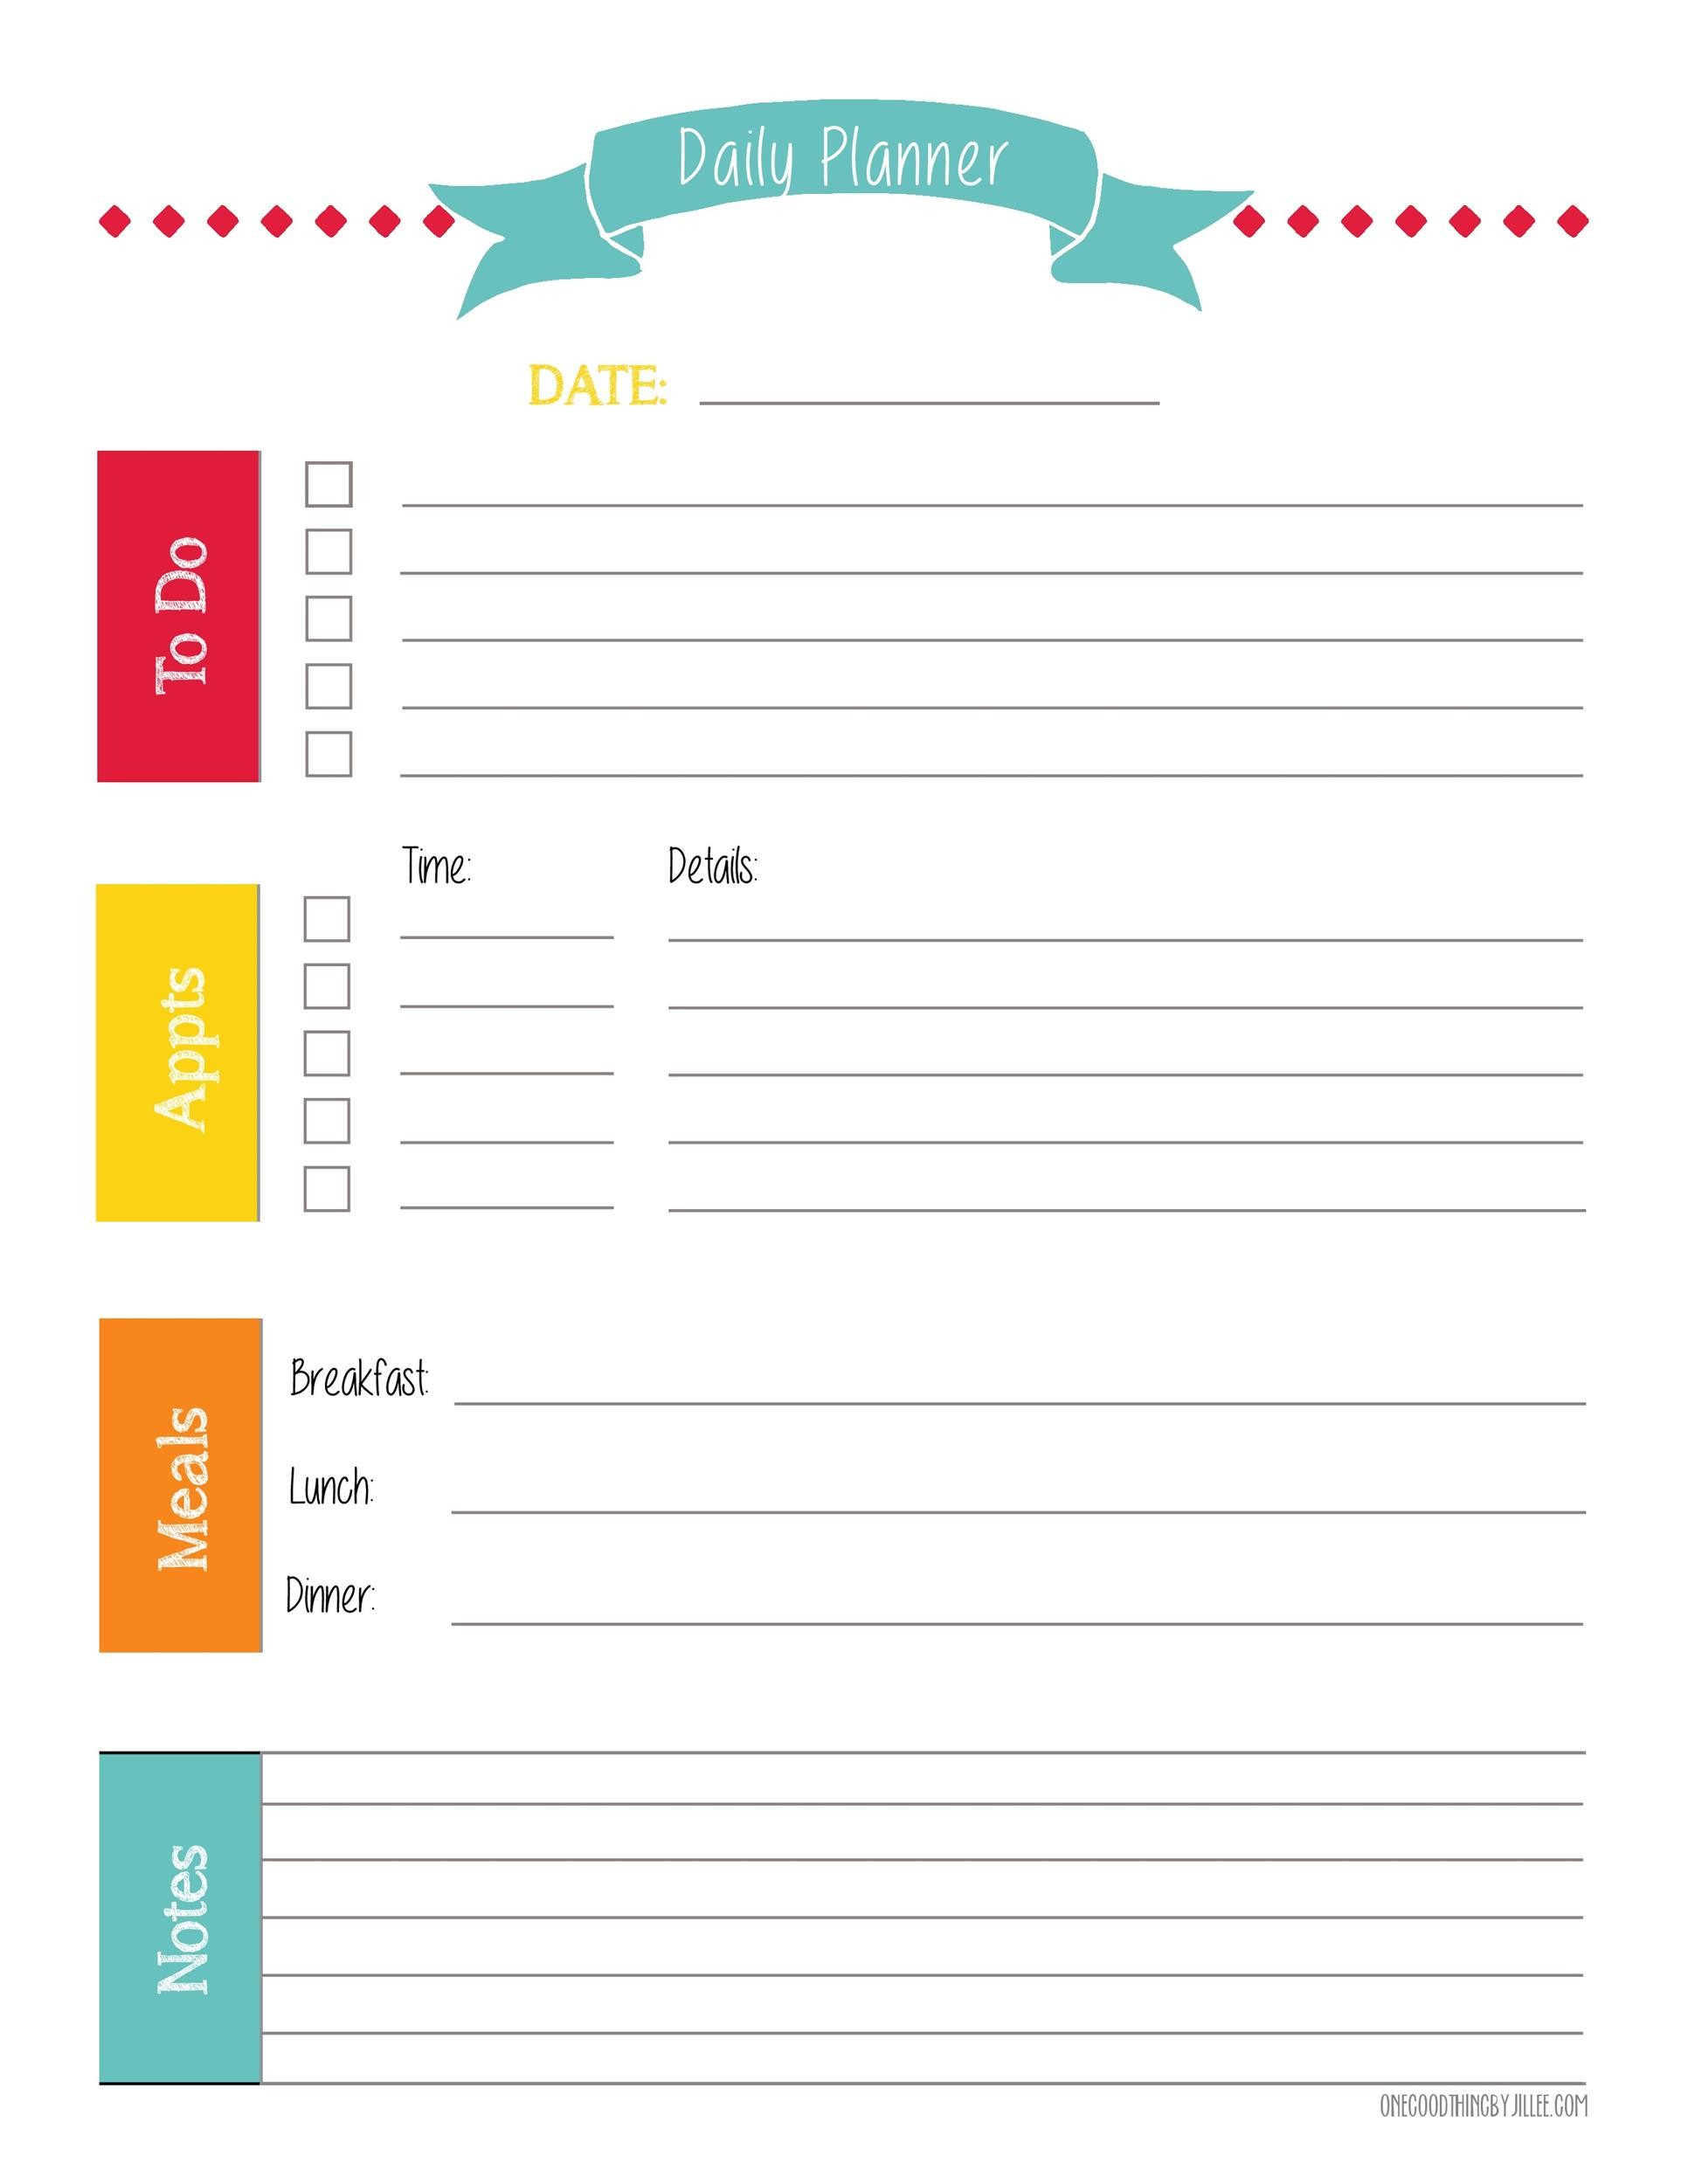 40 printable daily planner templates free template lab for One day event schedule template